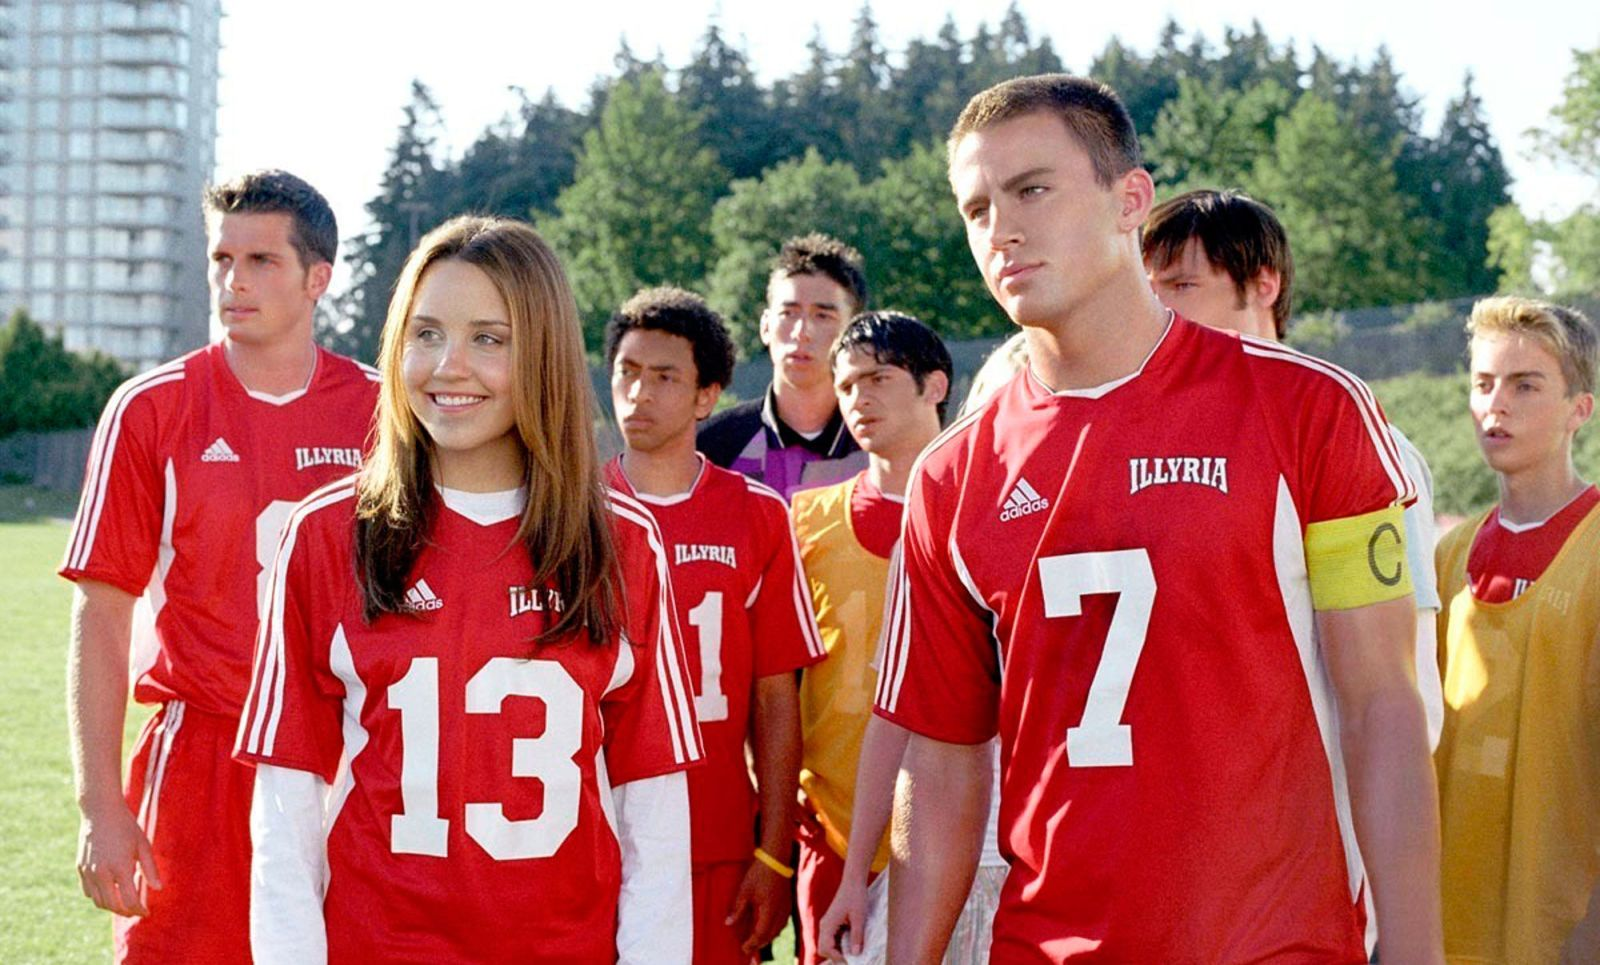 Also A Perks Player Dating Of Girl Soccer get five